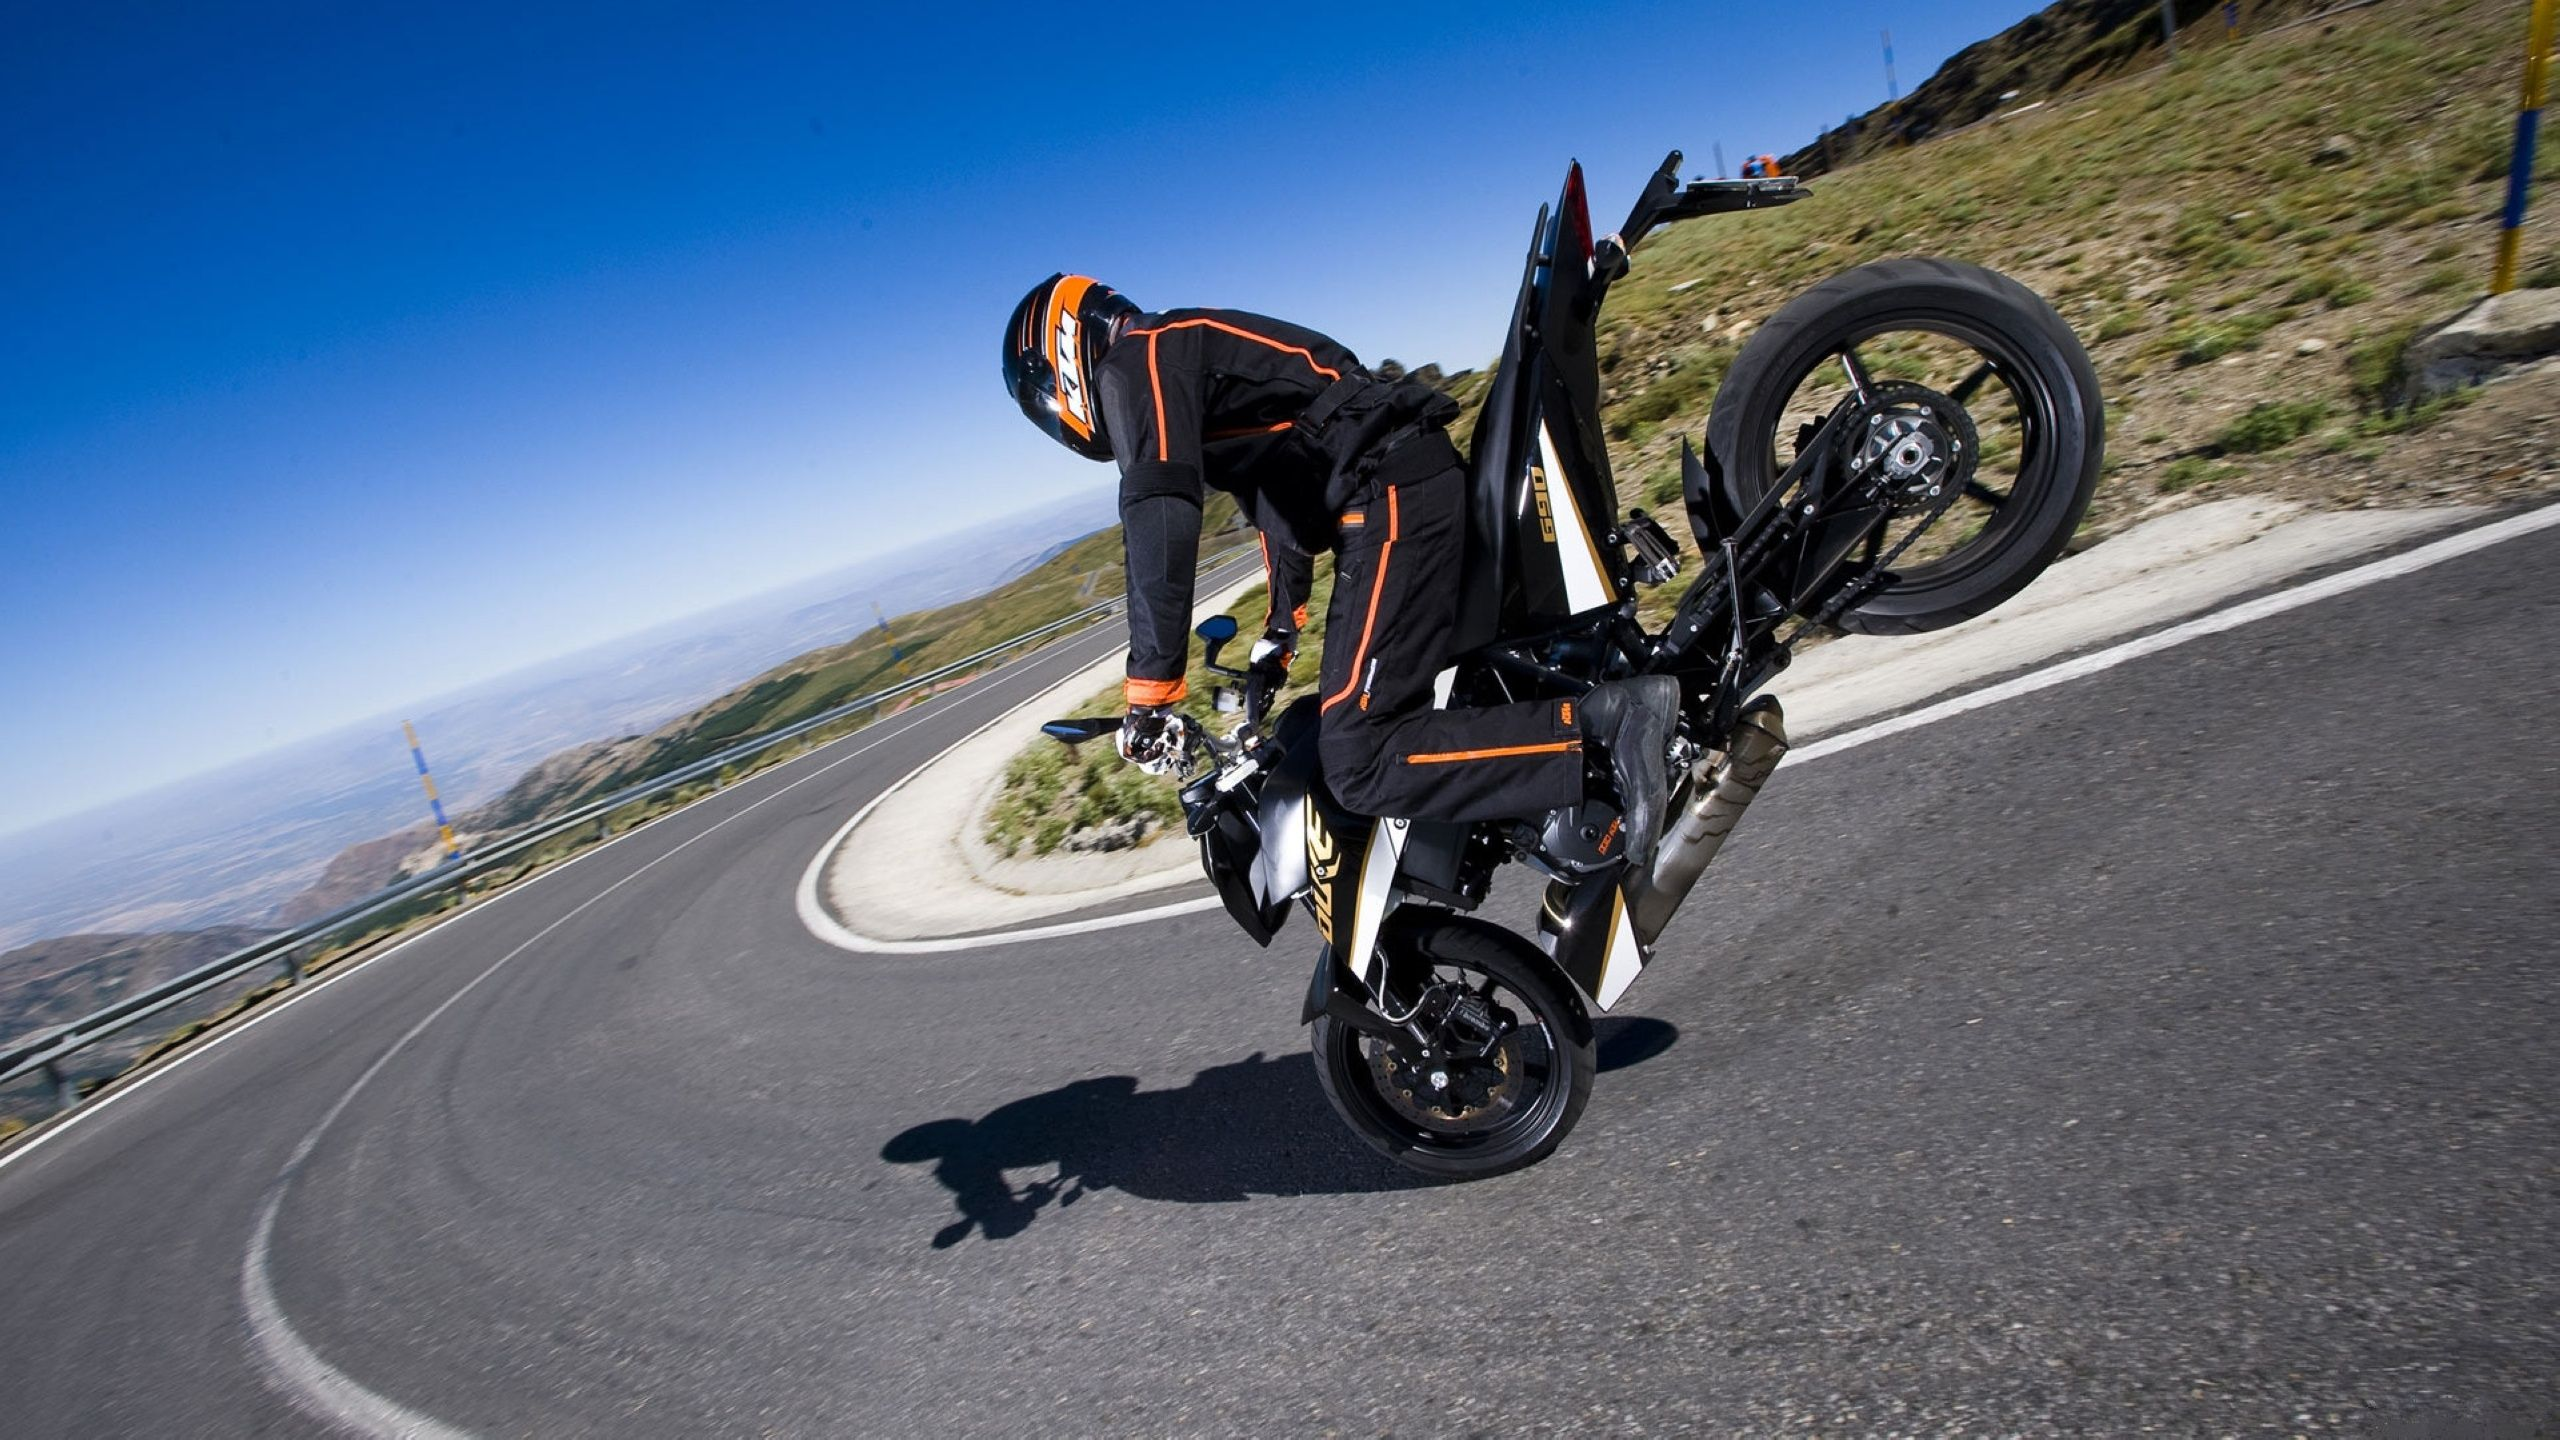 Ktm motorcycles hd wallpapers free wallaper downloads ktm sport - Ktm 690 Duke Stoppie Bikes Hd Wallpapers For Desktop